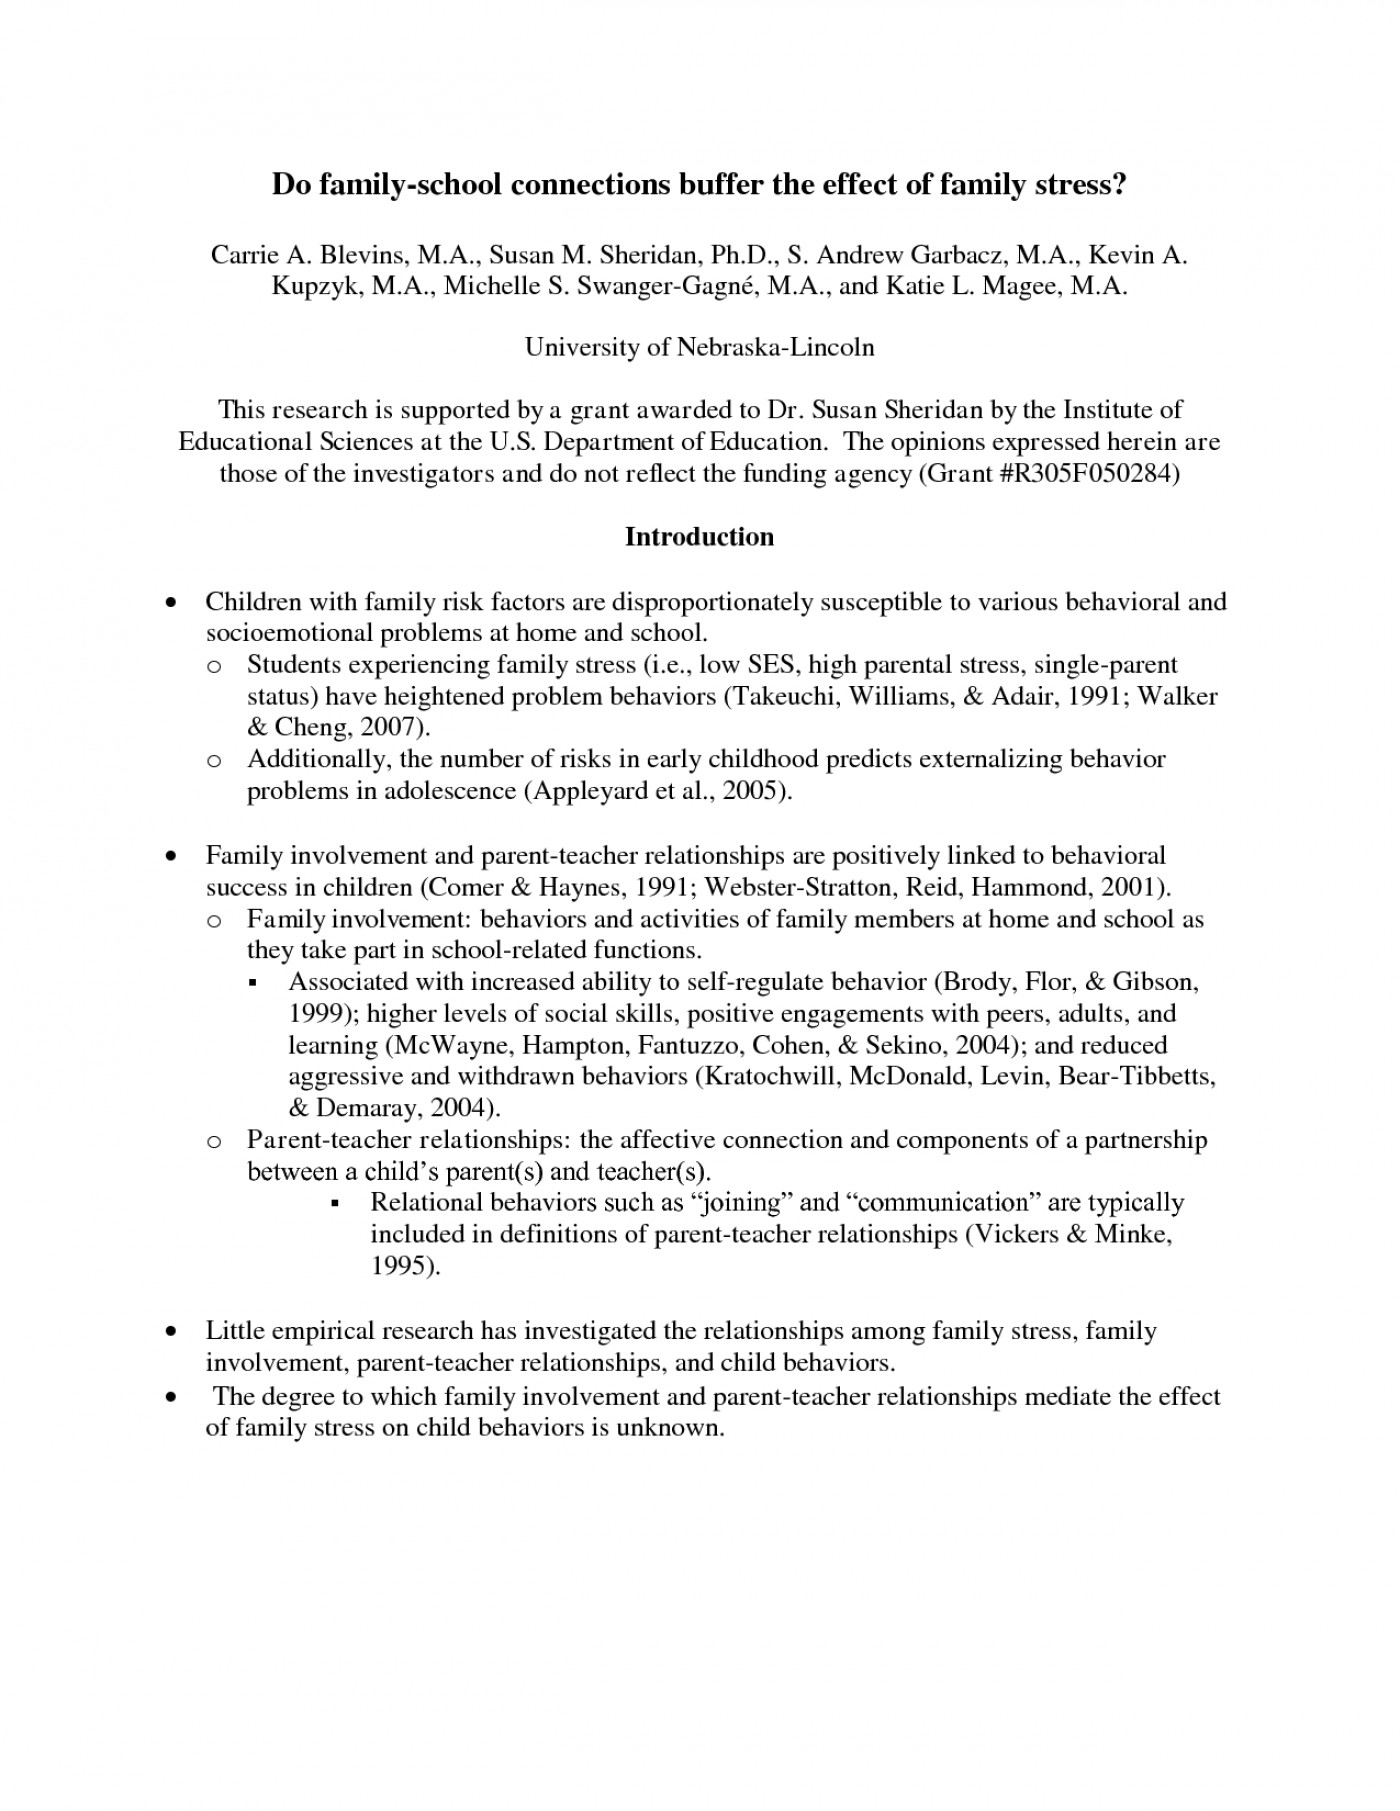 007 Components Of Research Paper Apa Fascinating A In Format 1400